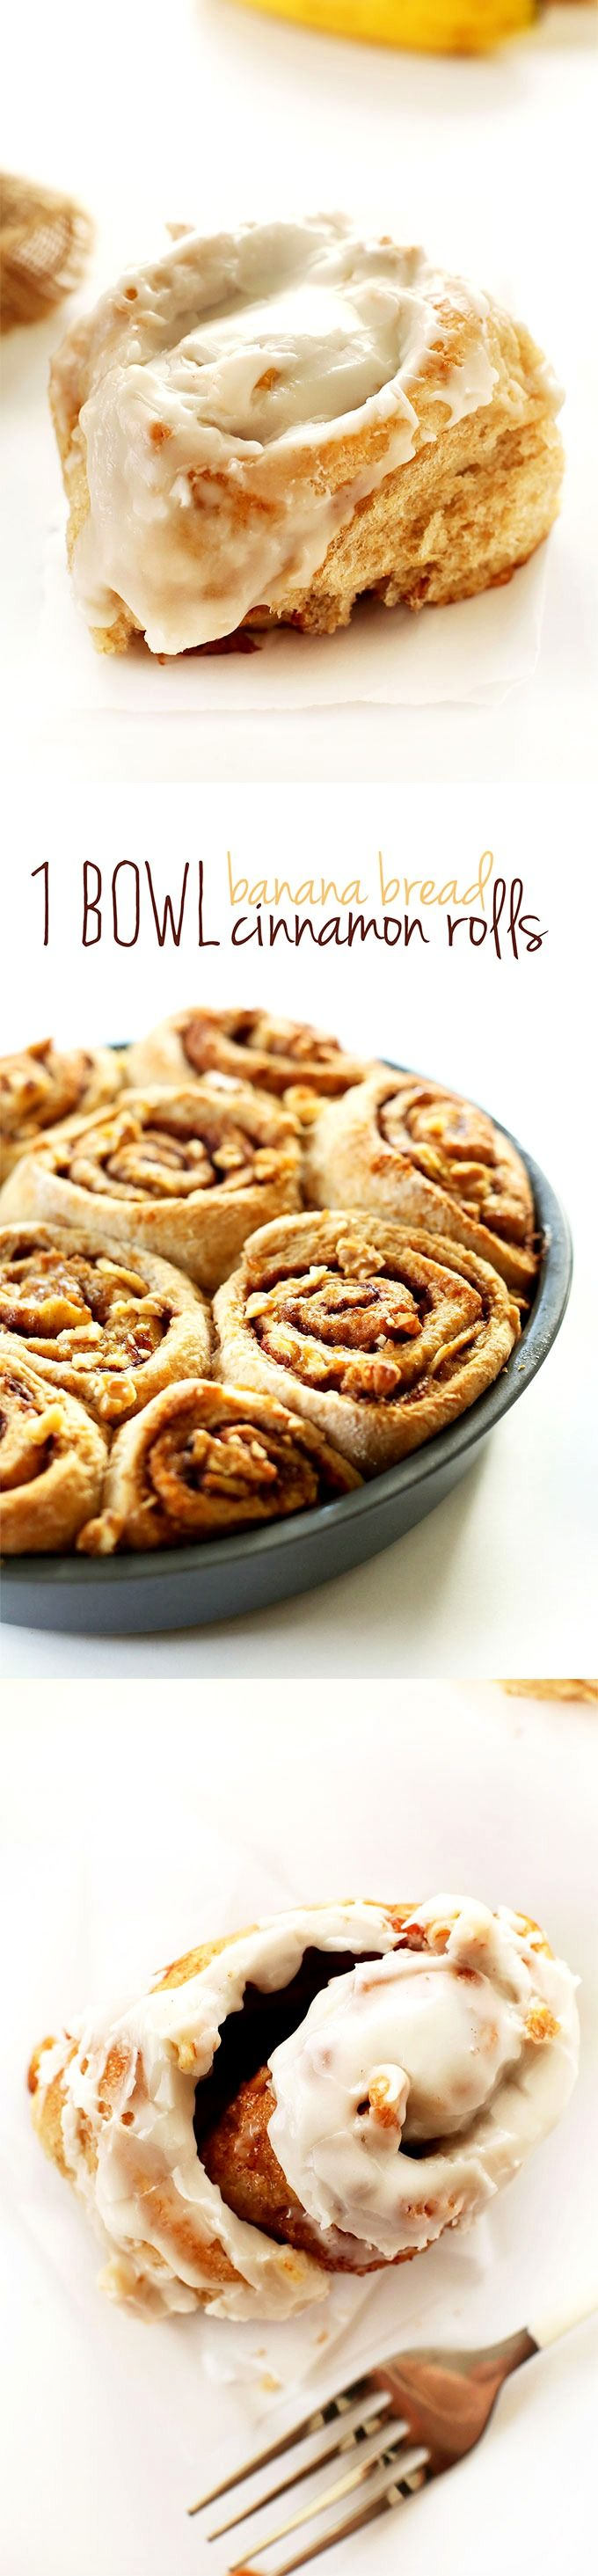 1 Bowl Banana Bread Cinnamon Rolls !!!!! Oh my goodness! These would be the most delicious cinnamon rolls ever!!!!! tender, flaky, perfectly sweet and seriously simple. #vegan